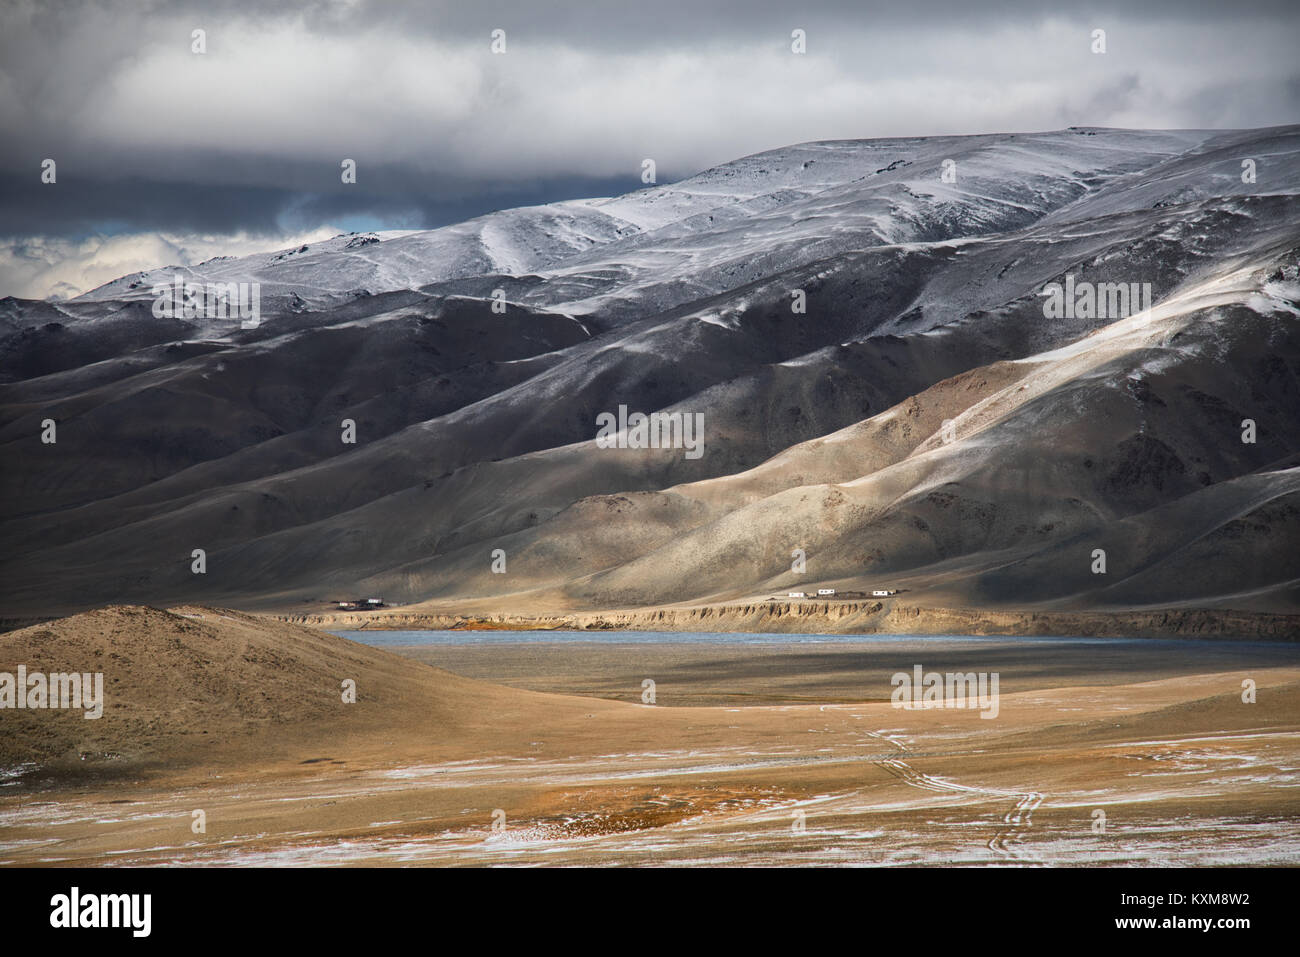 Mongolian landscape snowy mountains snow winter cloudy Mongolia - Stock Image